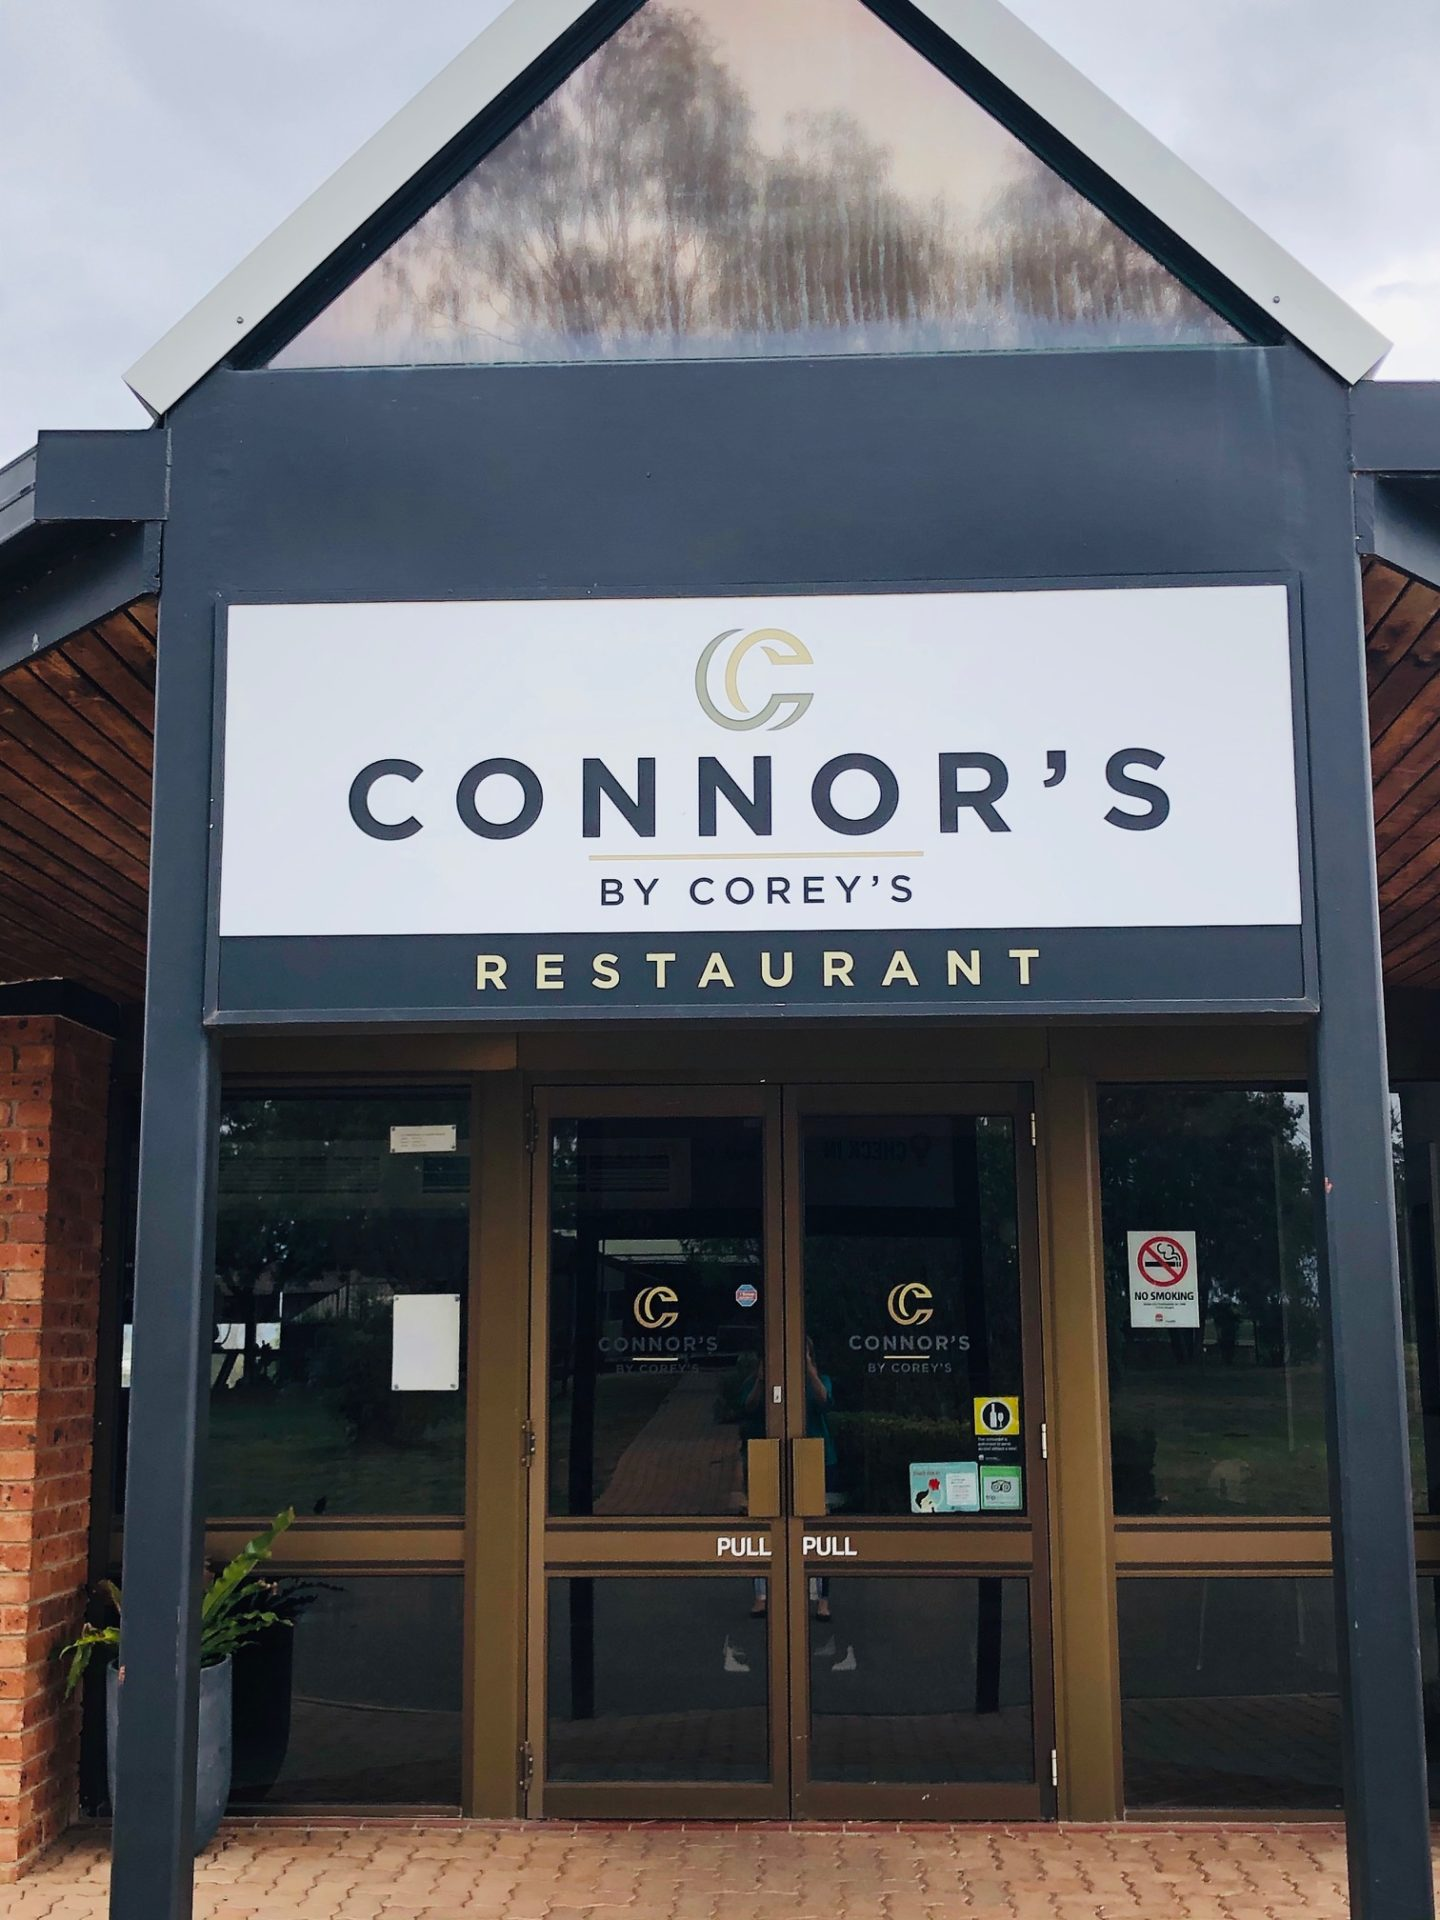 Connor's Restaurant